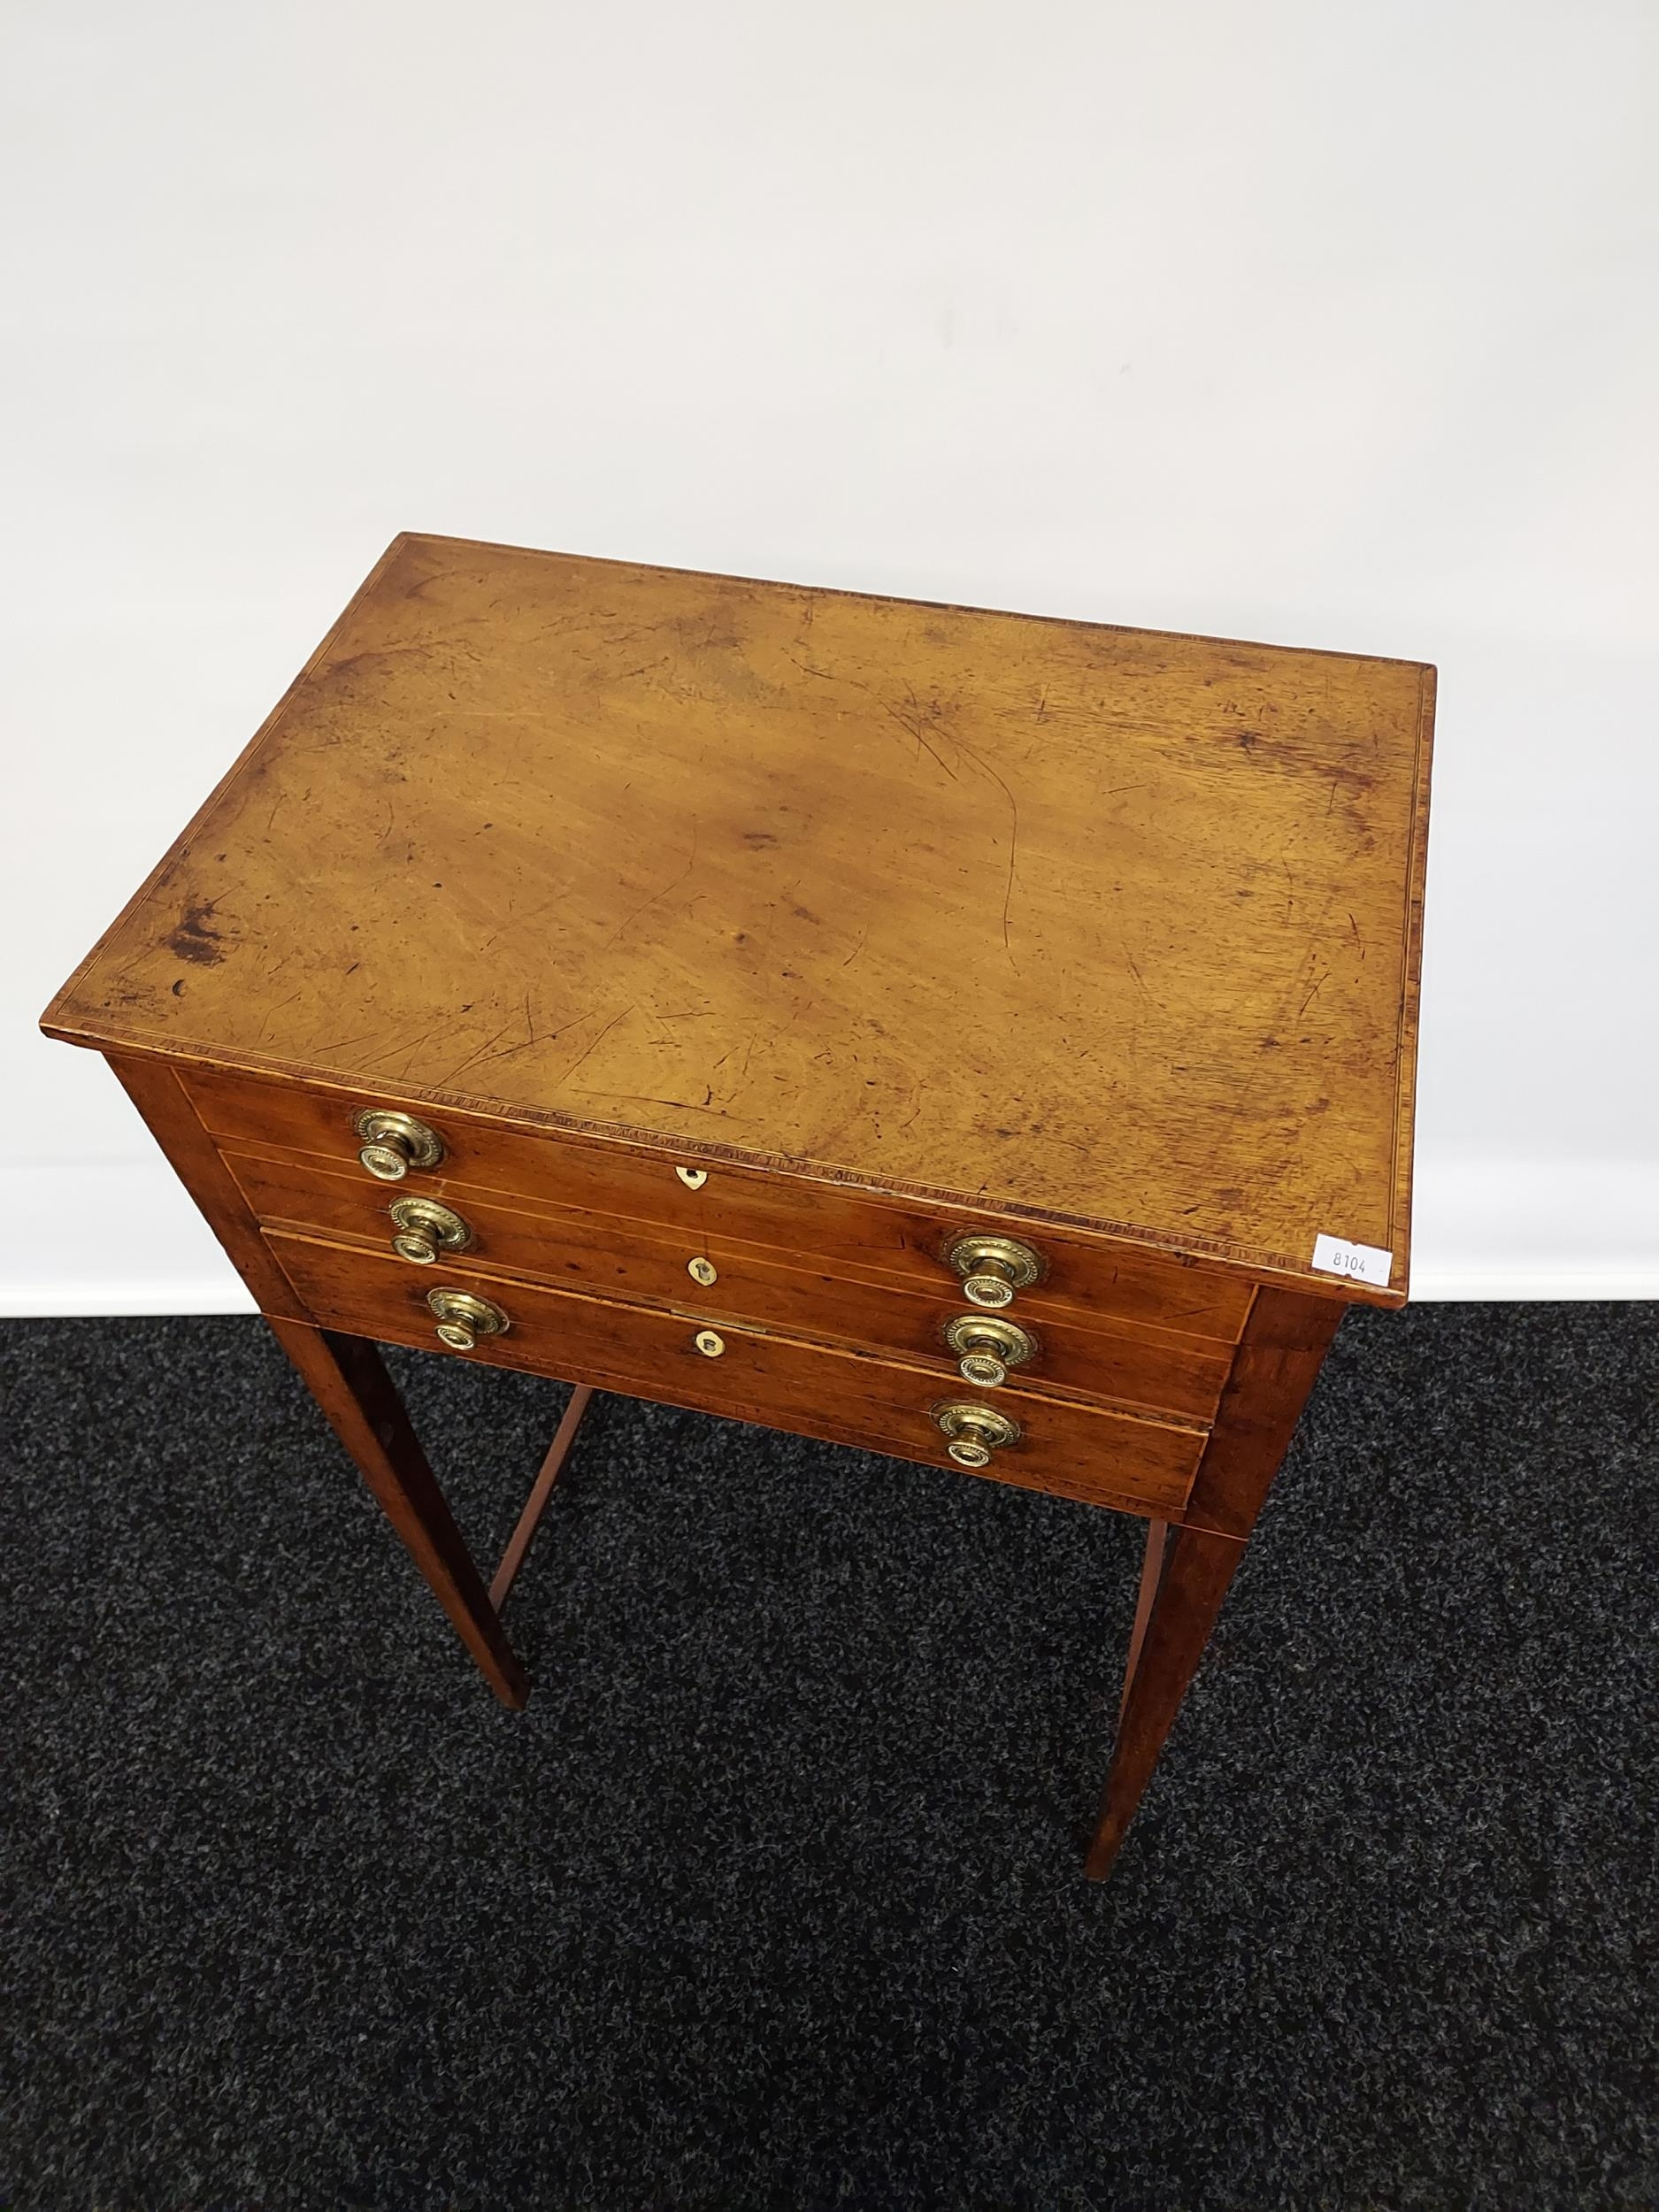 Georgian mahogany lift top console table, one centre drawer under two false drawers, raised on - Image 2 of 7